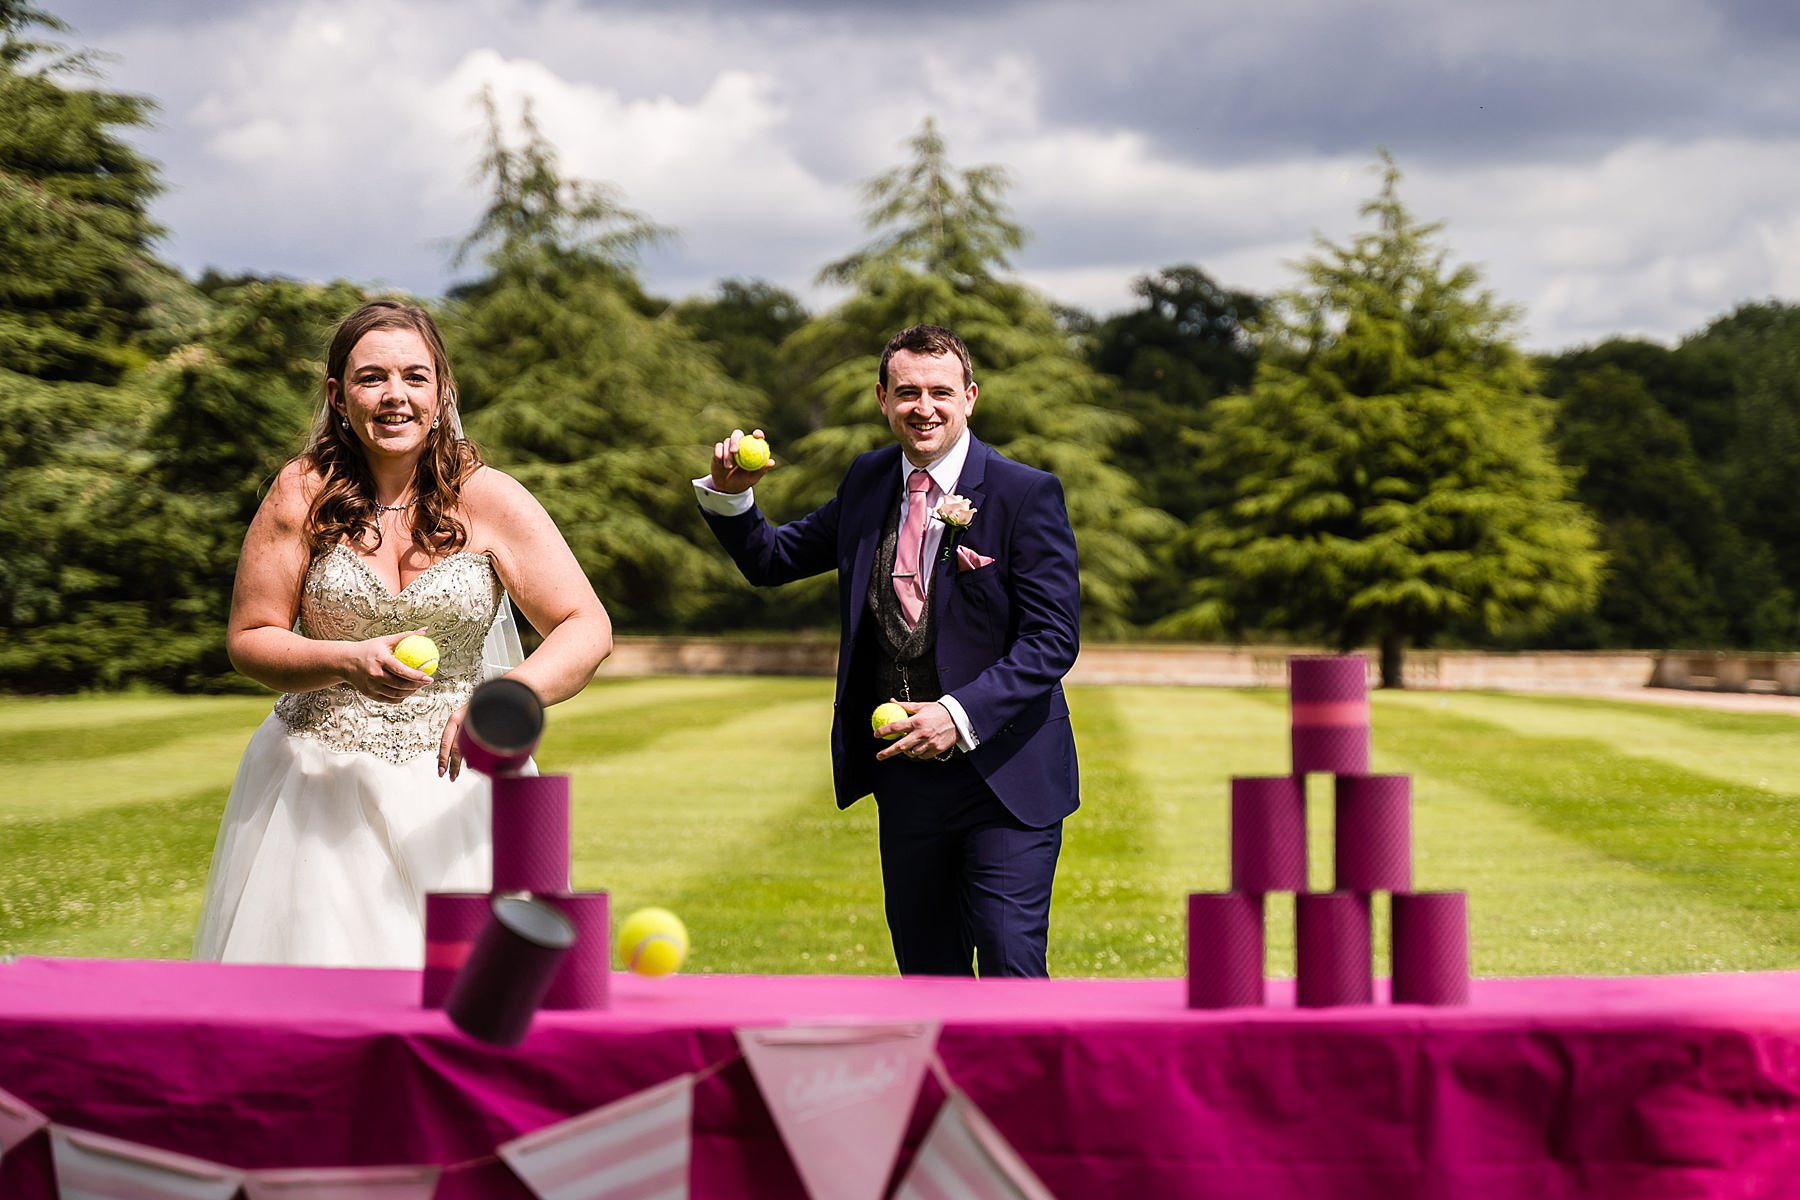 bride and groom playing lawn games